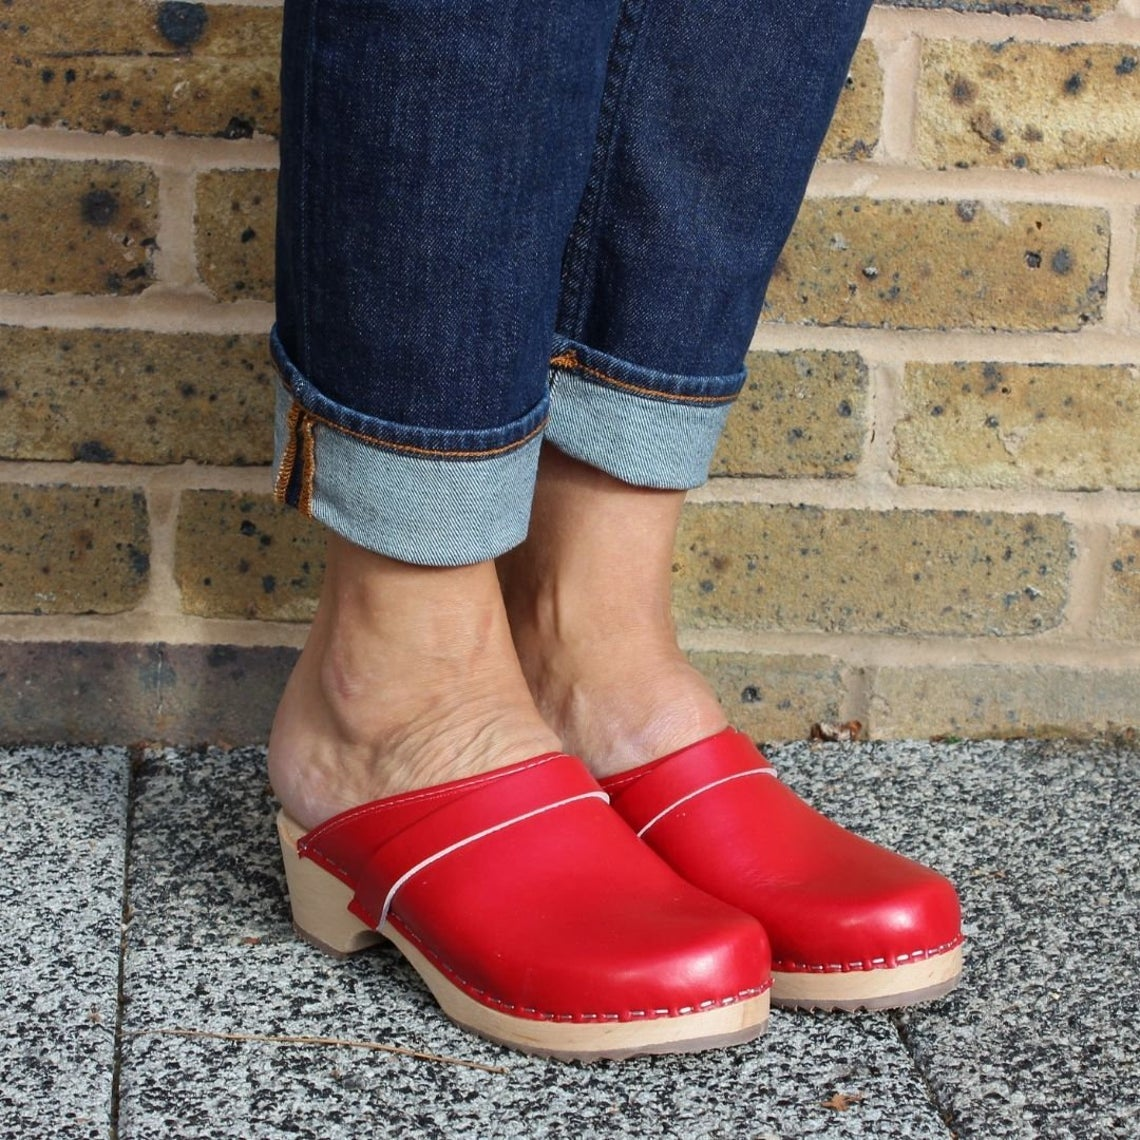 Affordable Clogs and Mules from Crocs